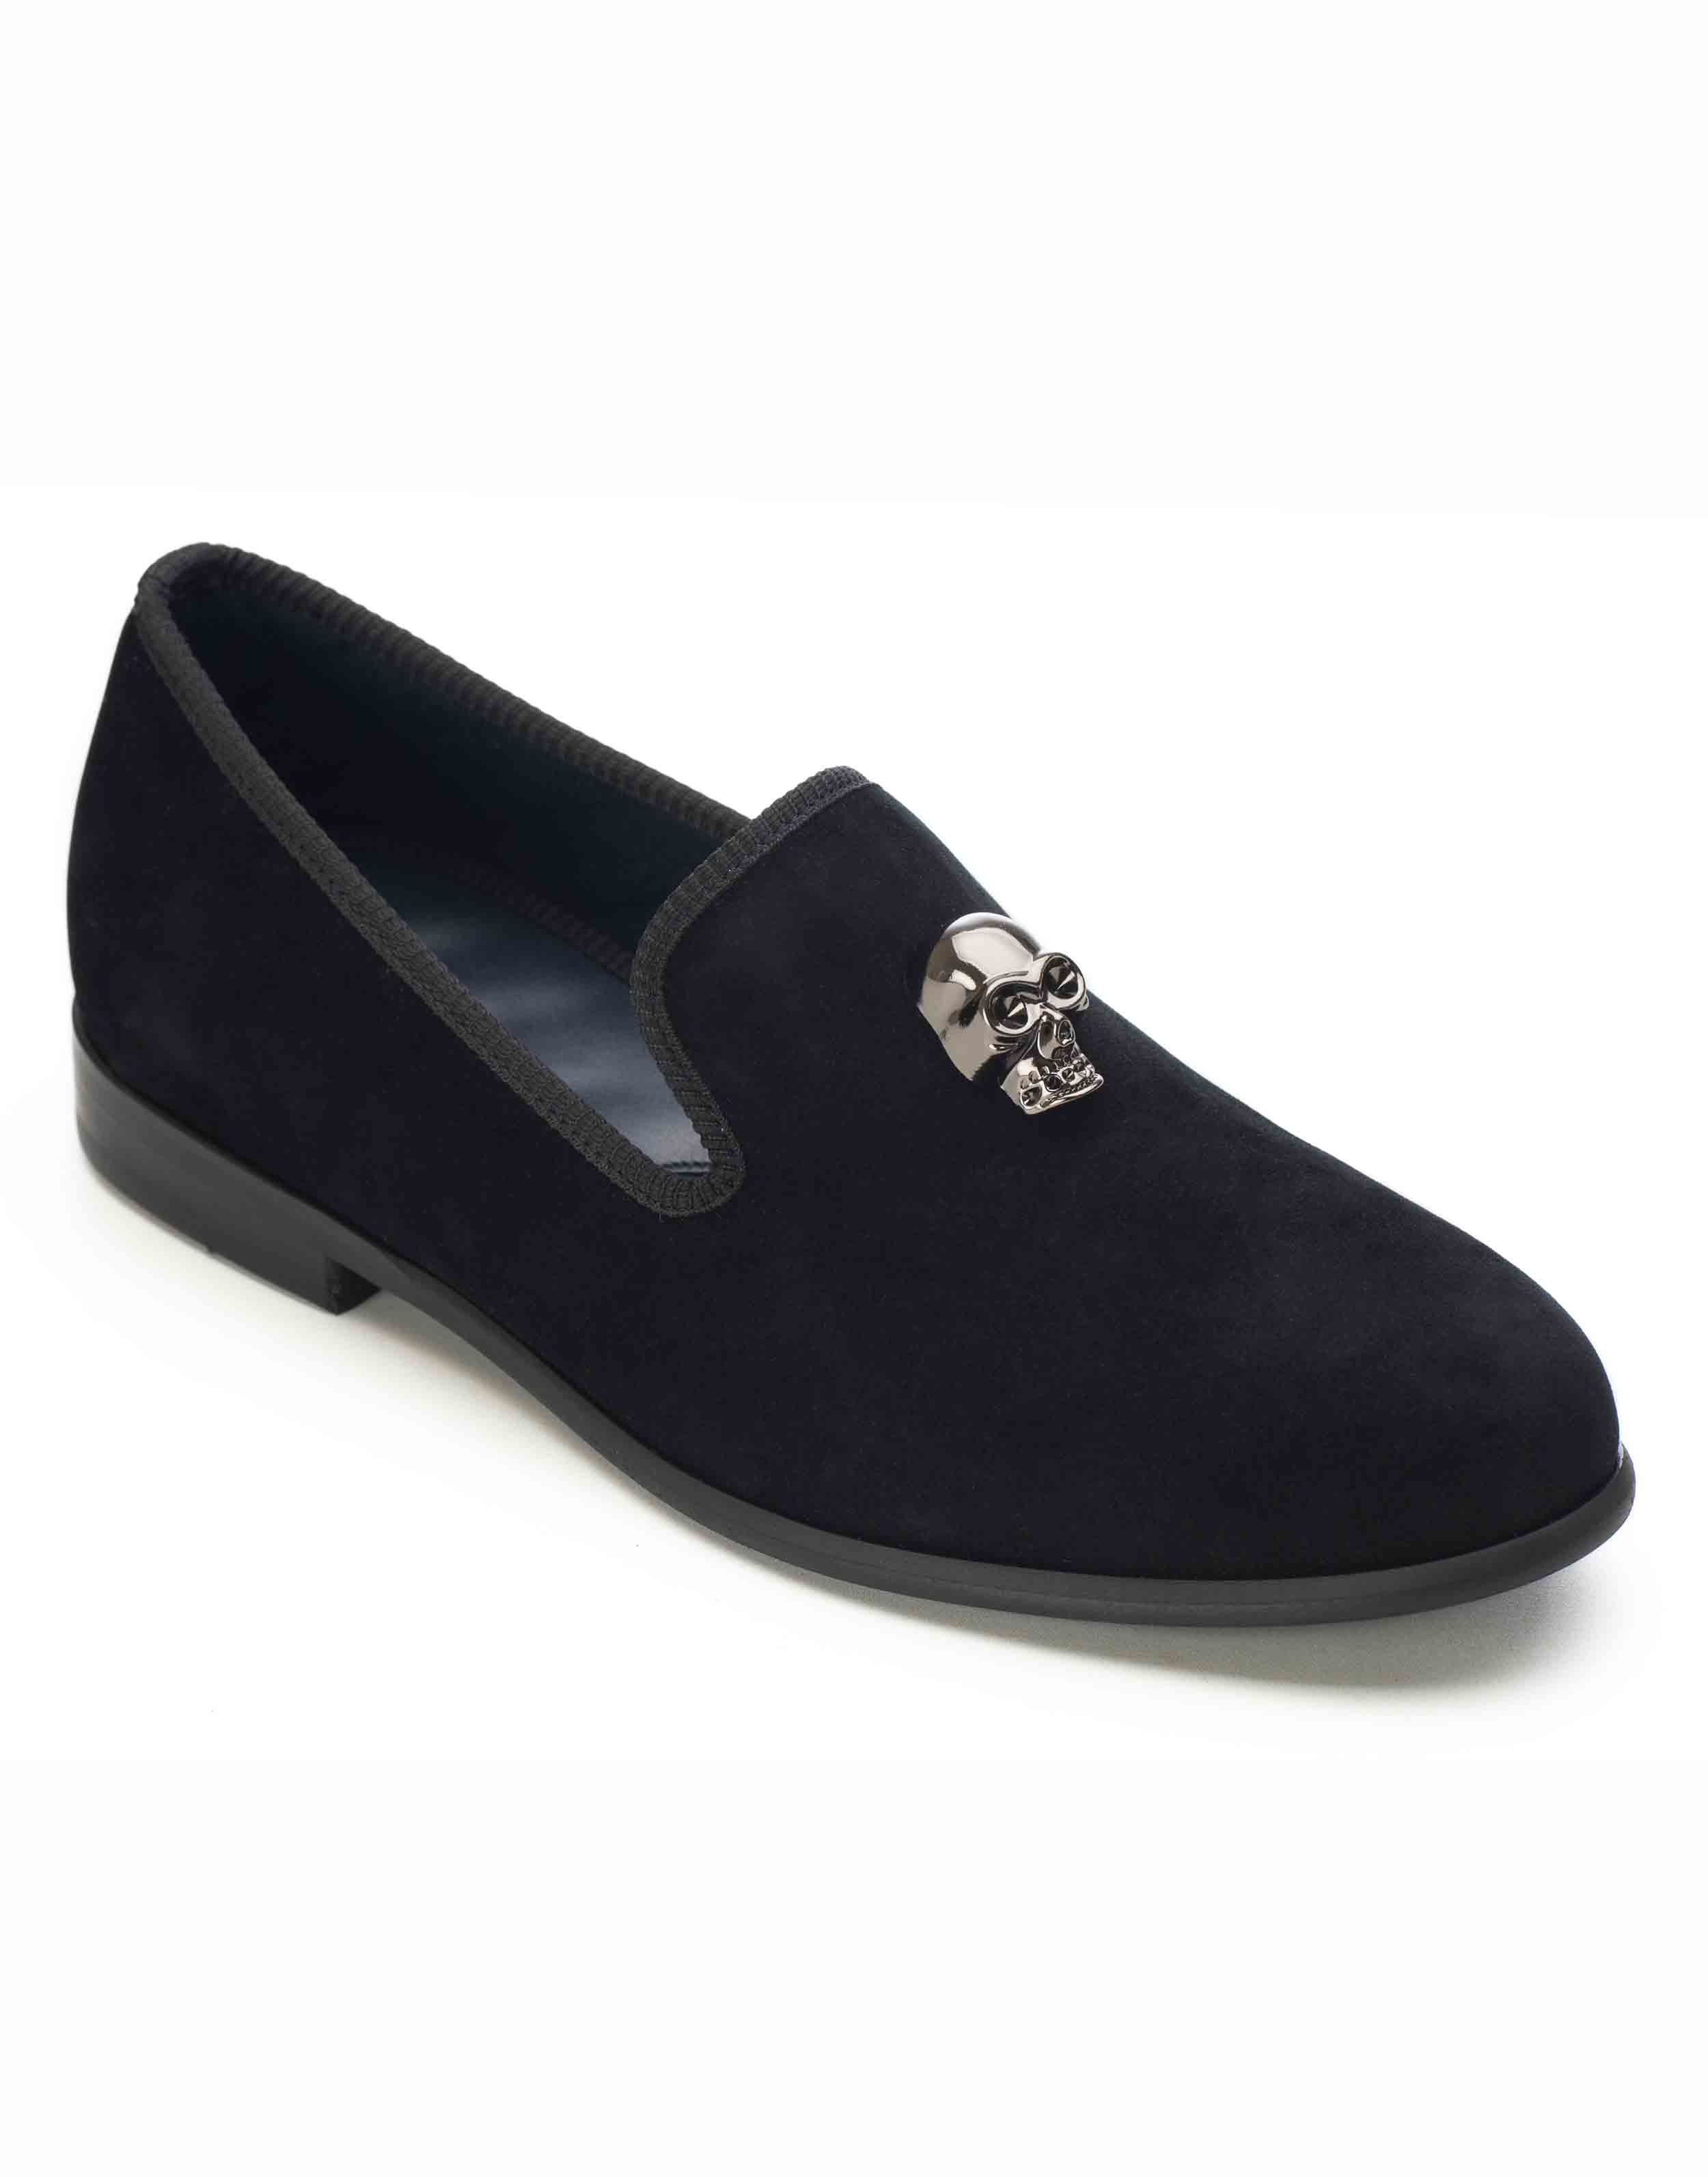 BLACK VELVET LOAFERS – SKULL2